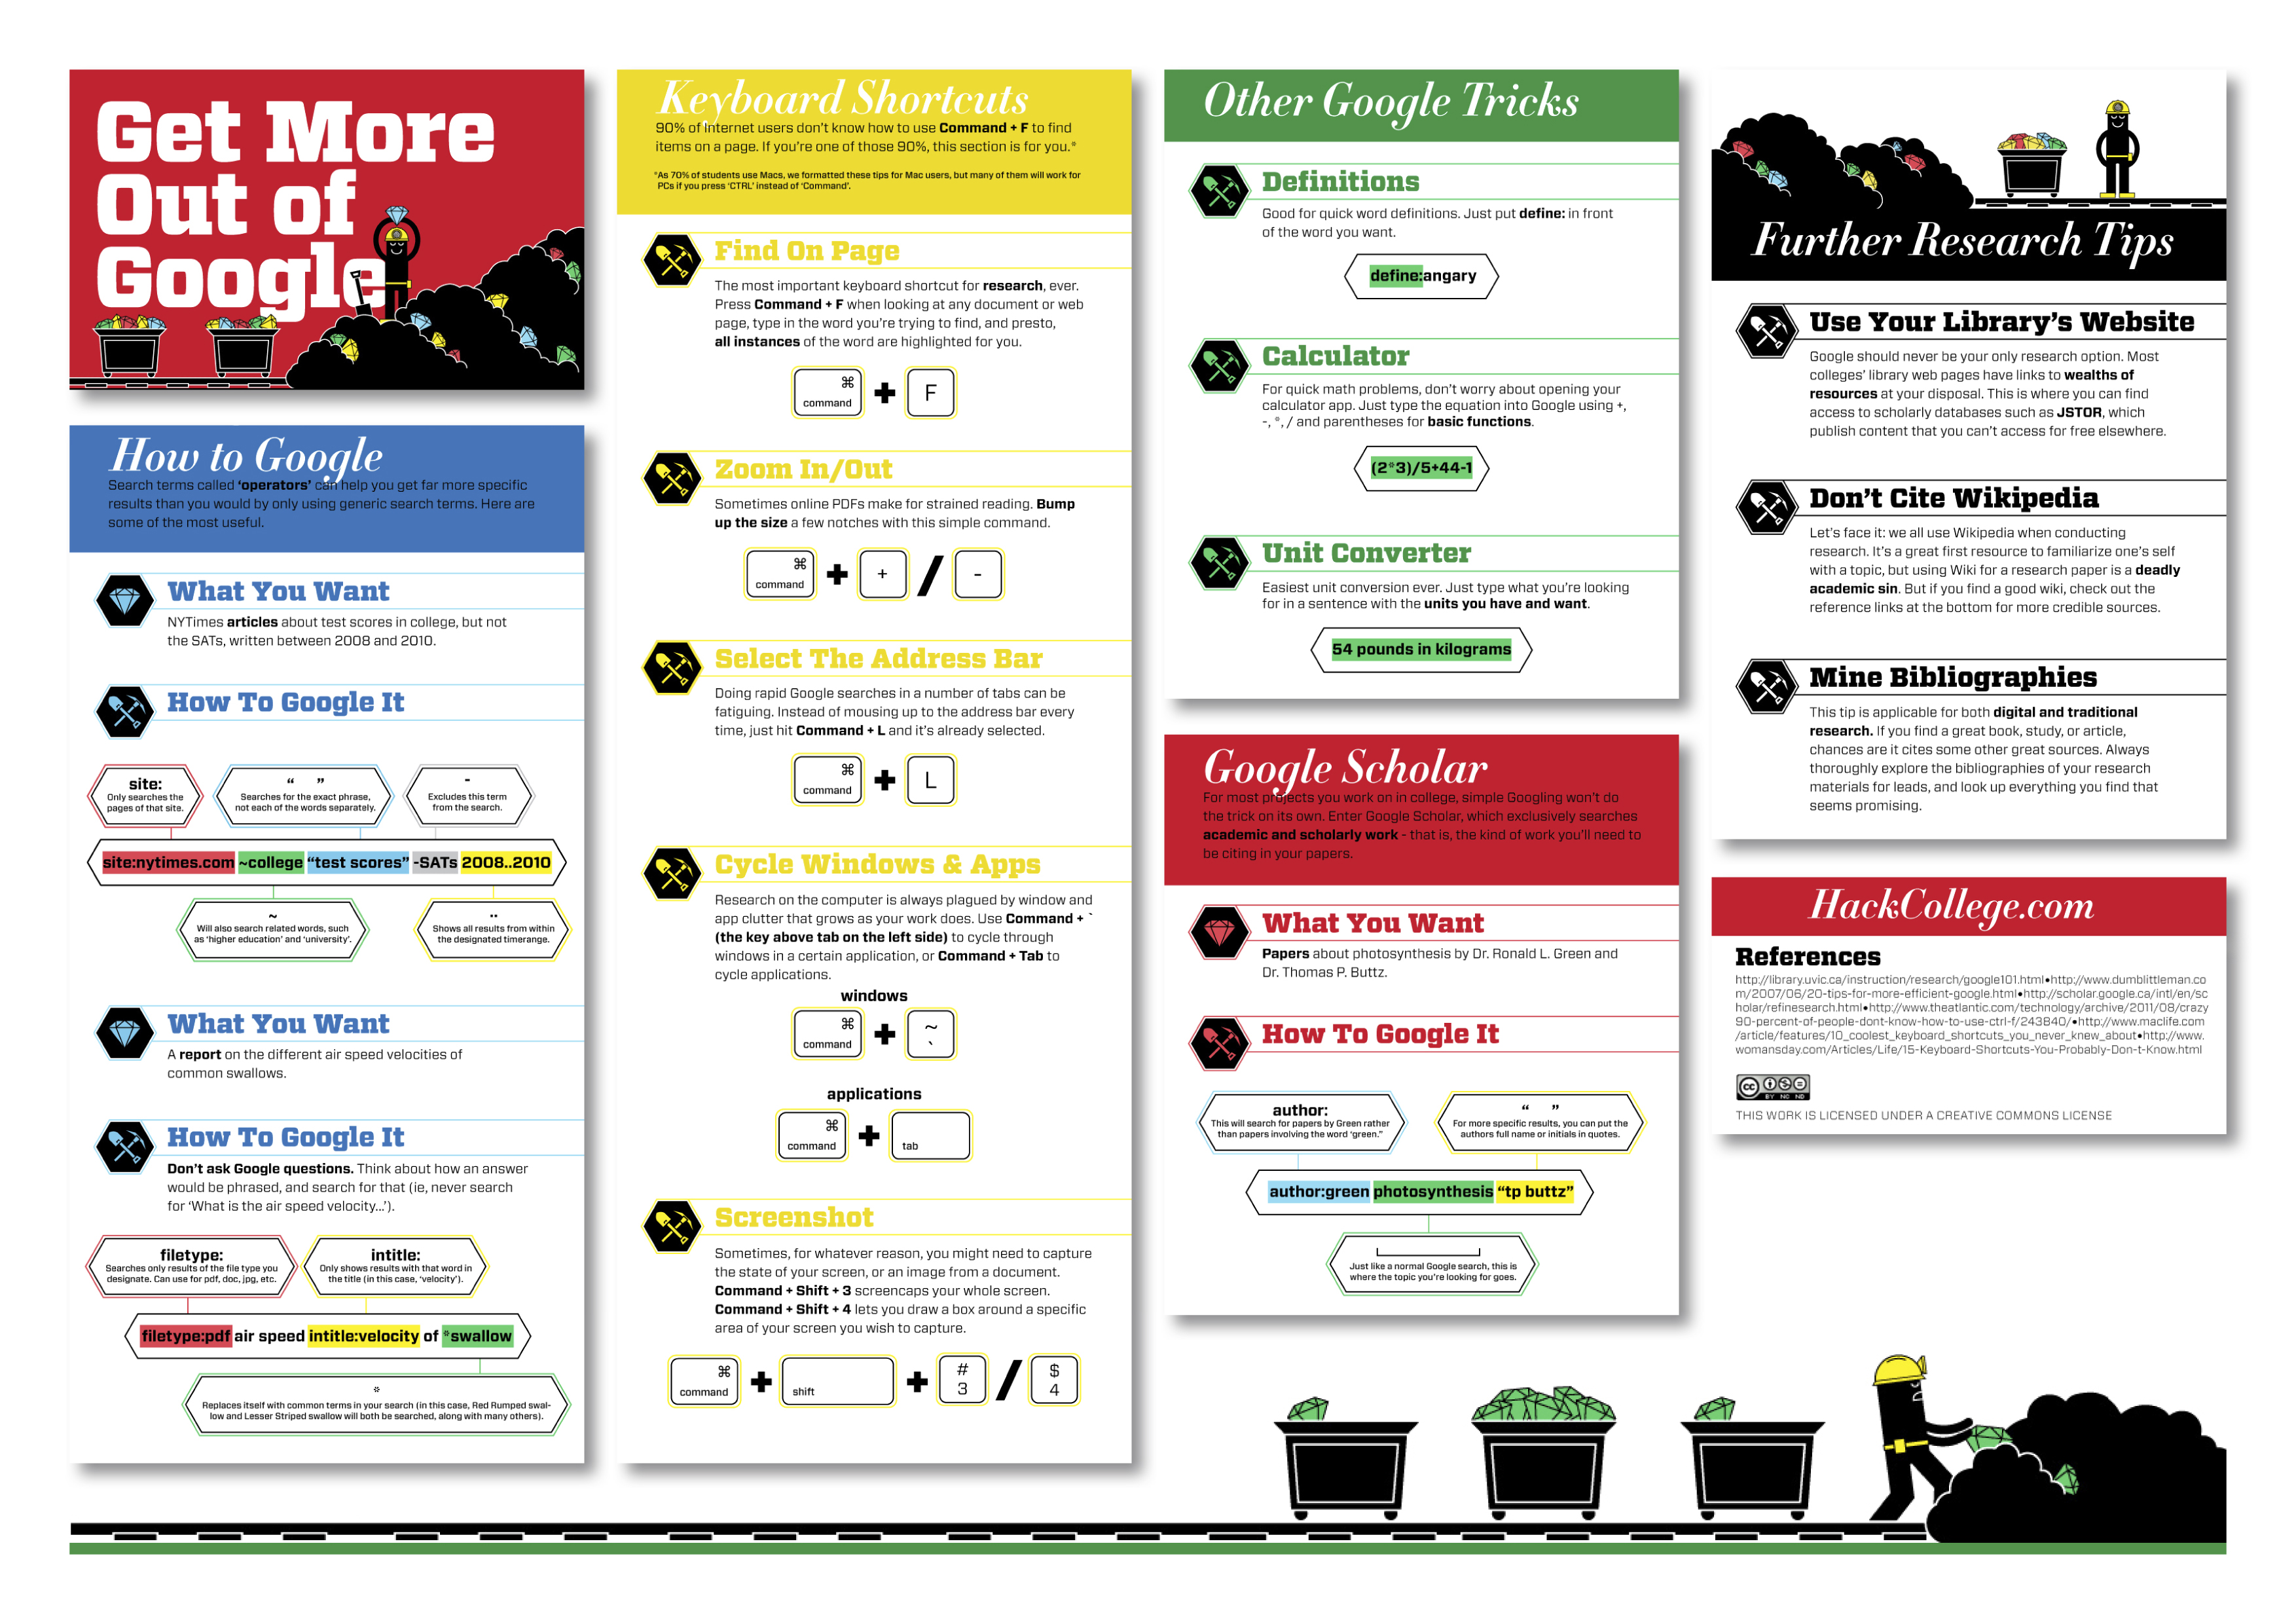 Infographic on how to get more out of google. It explains search tips mentioned previously, such as using quotation marks to narrow a search, using keyboard shortcuts like ctrl+F to search, zooming in, using google to define words, as a calculator, and a unit converter.